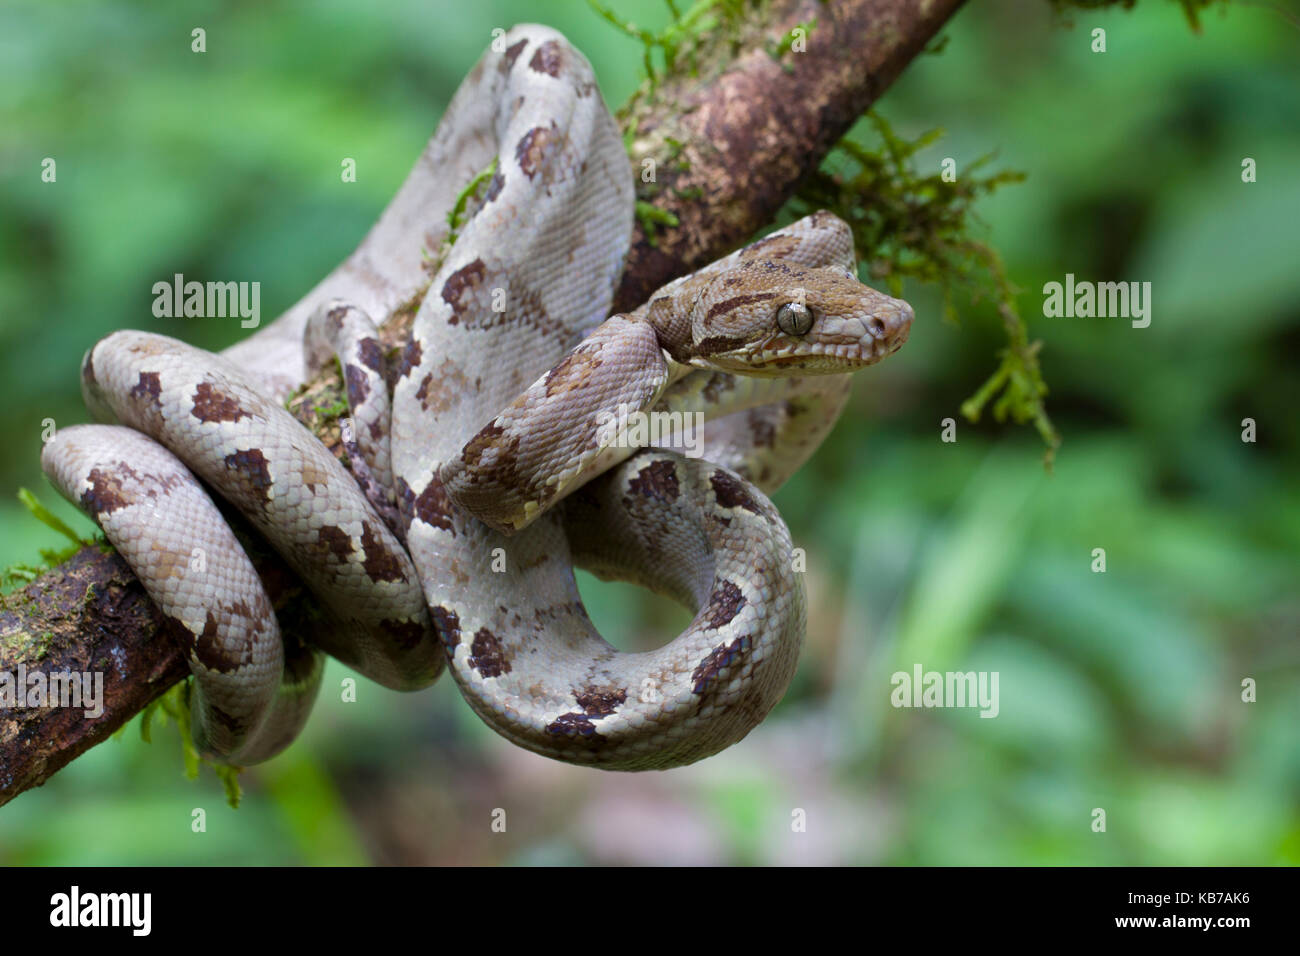 Boa Constrictor Amazon Stock Photos & Boa Constrictor Amazon Stock ...